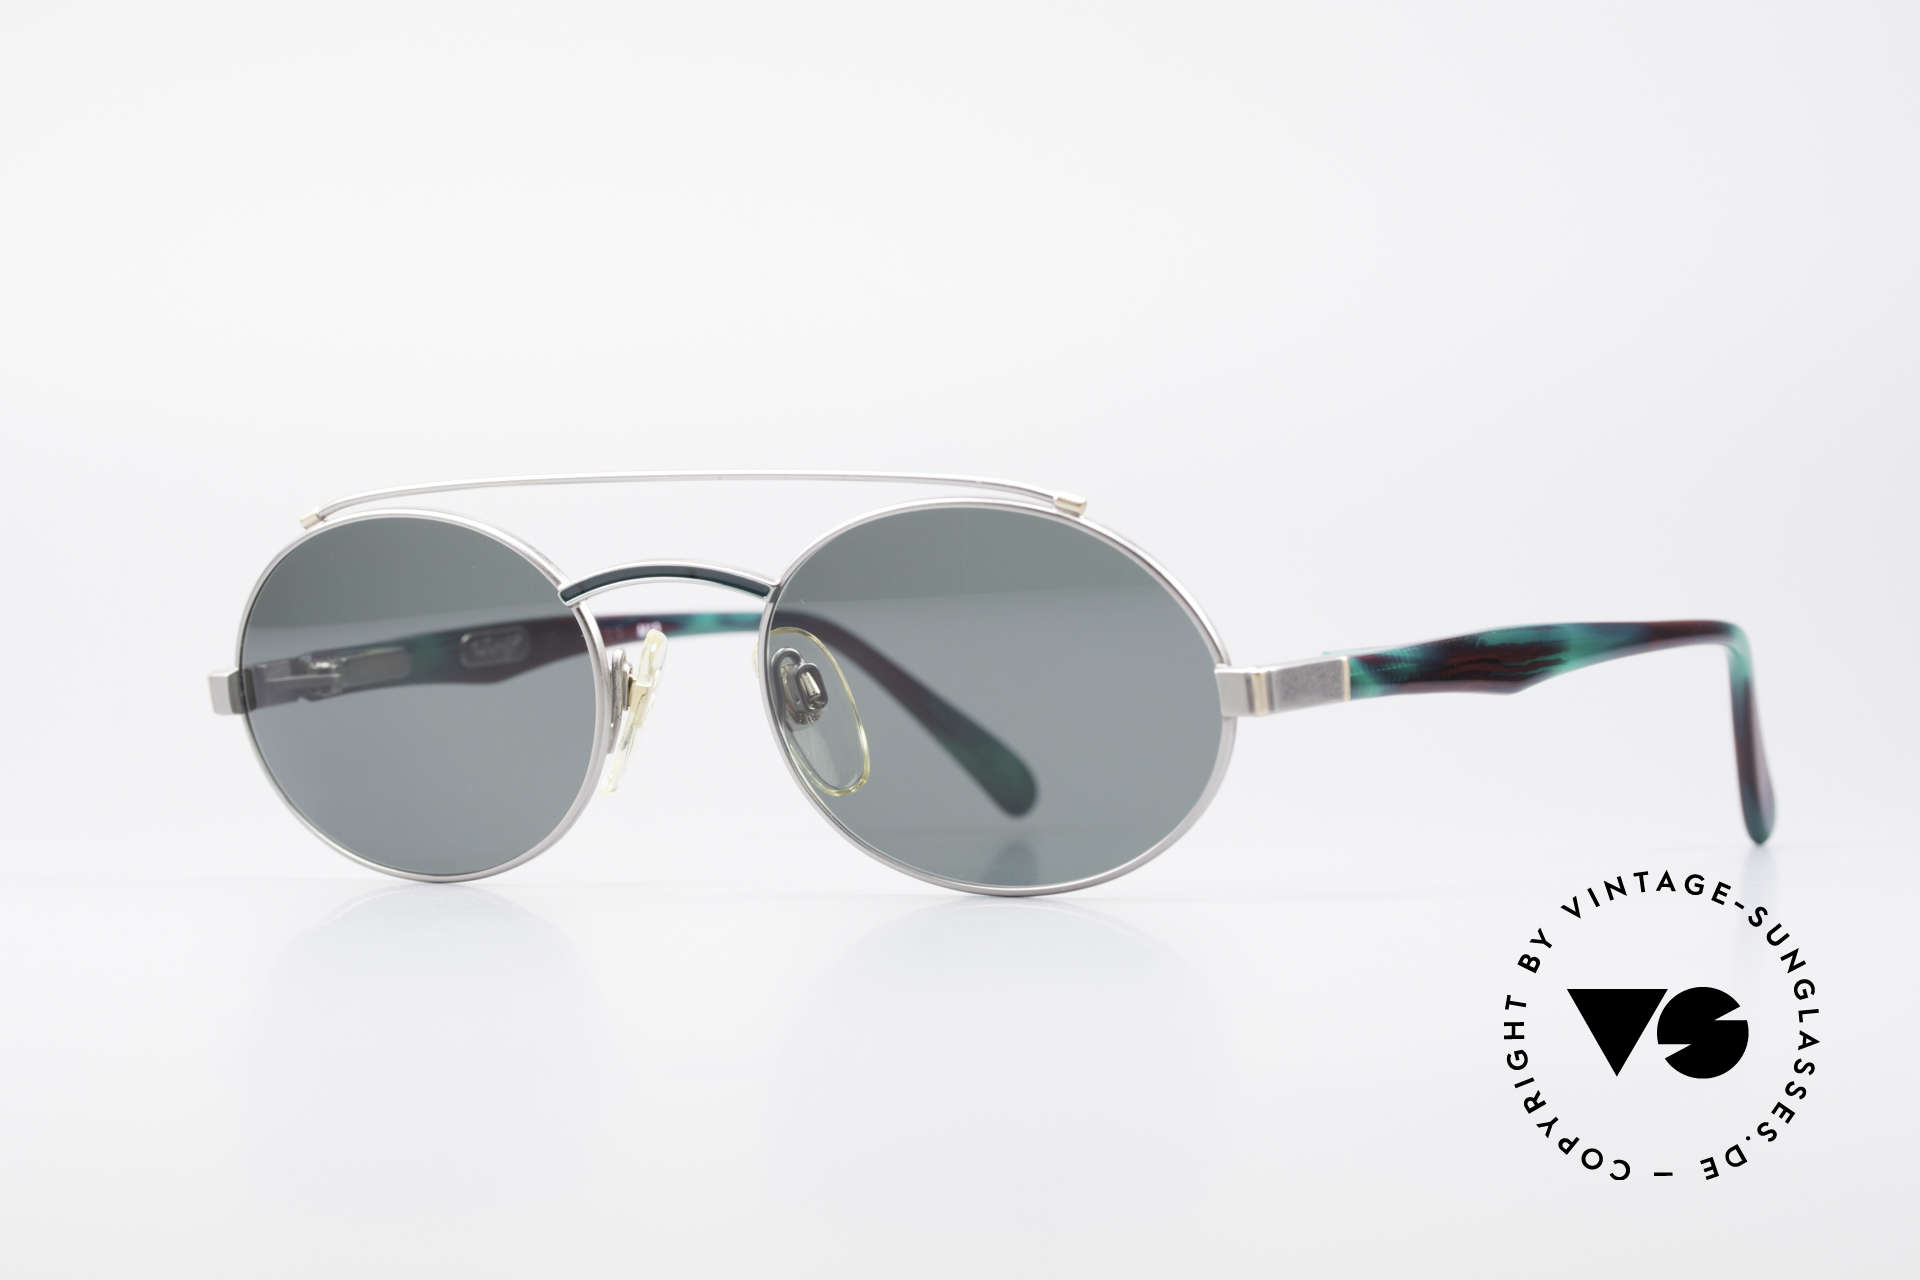 Davidoff 305 Oval Vintage Men's Frame, silver frame: temples have a 'fir green / claret' pattern, Made for Men